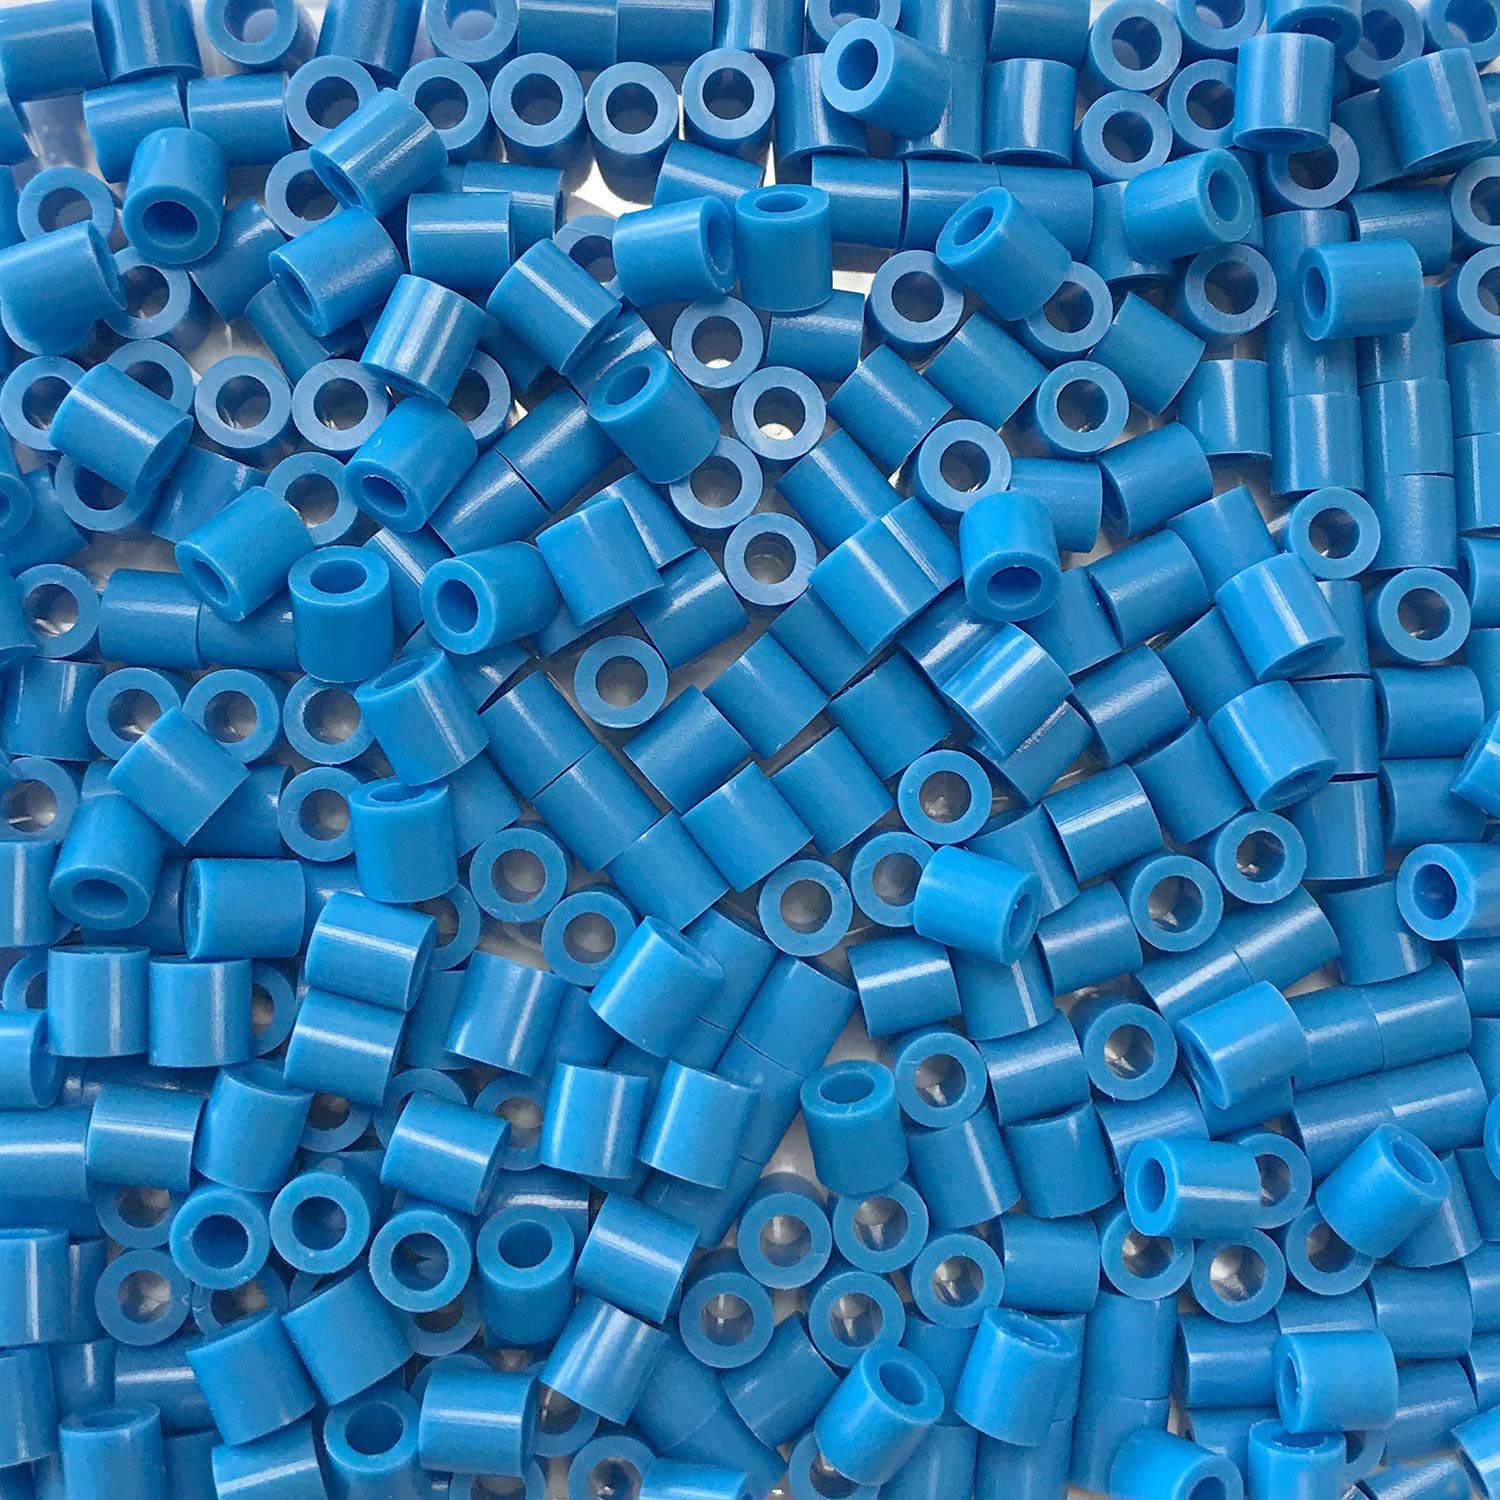 Light Blue Perler PER8011101 Fuse Bead Bag for Arts and Crafts 6000pc